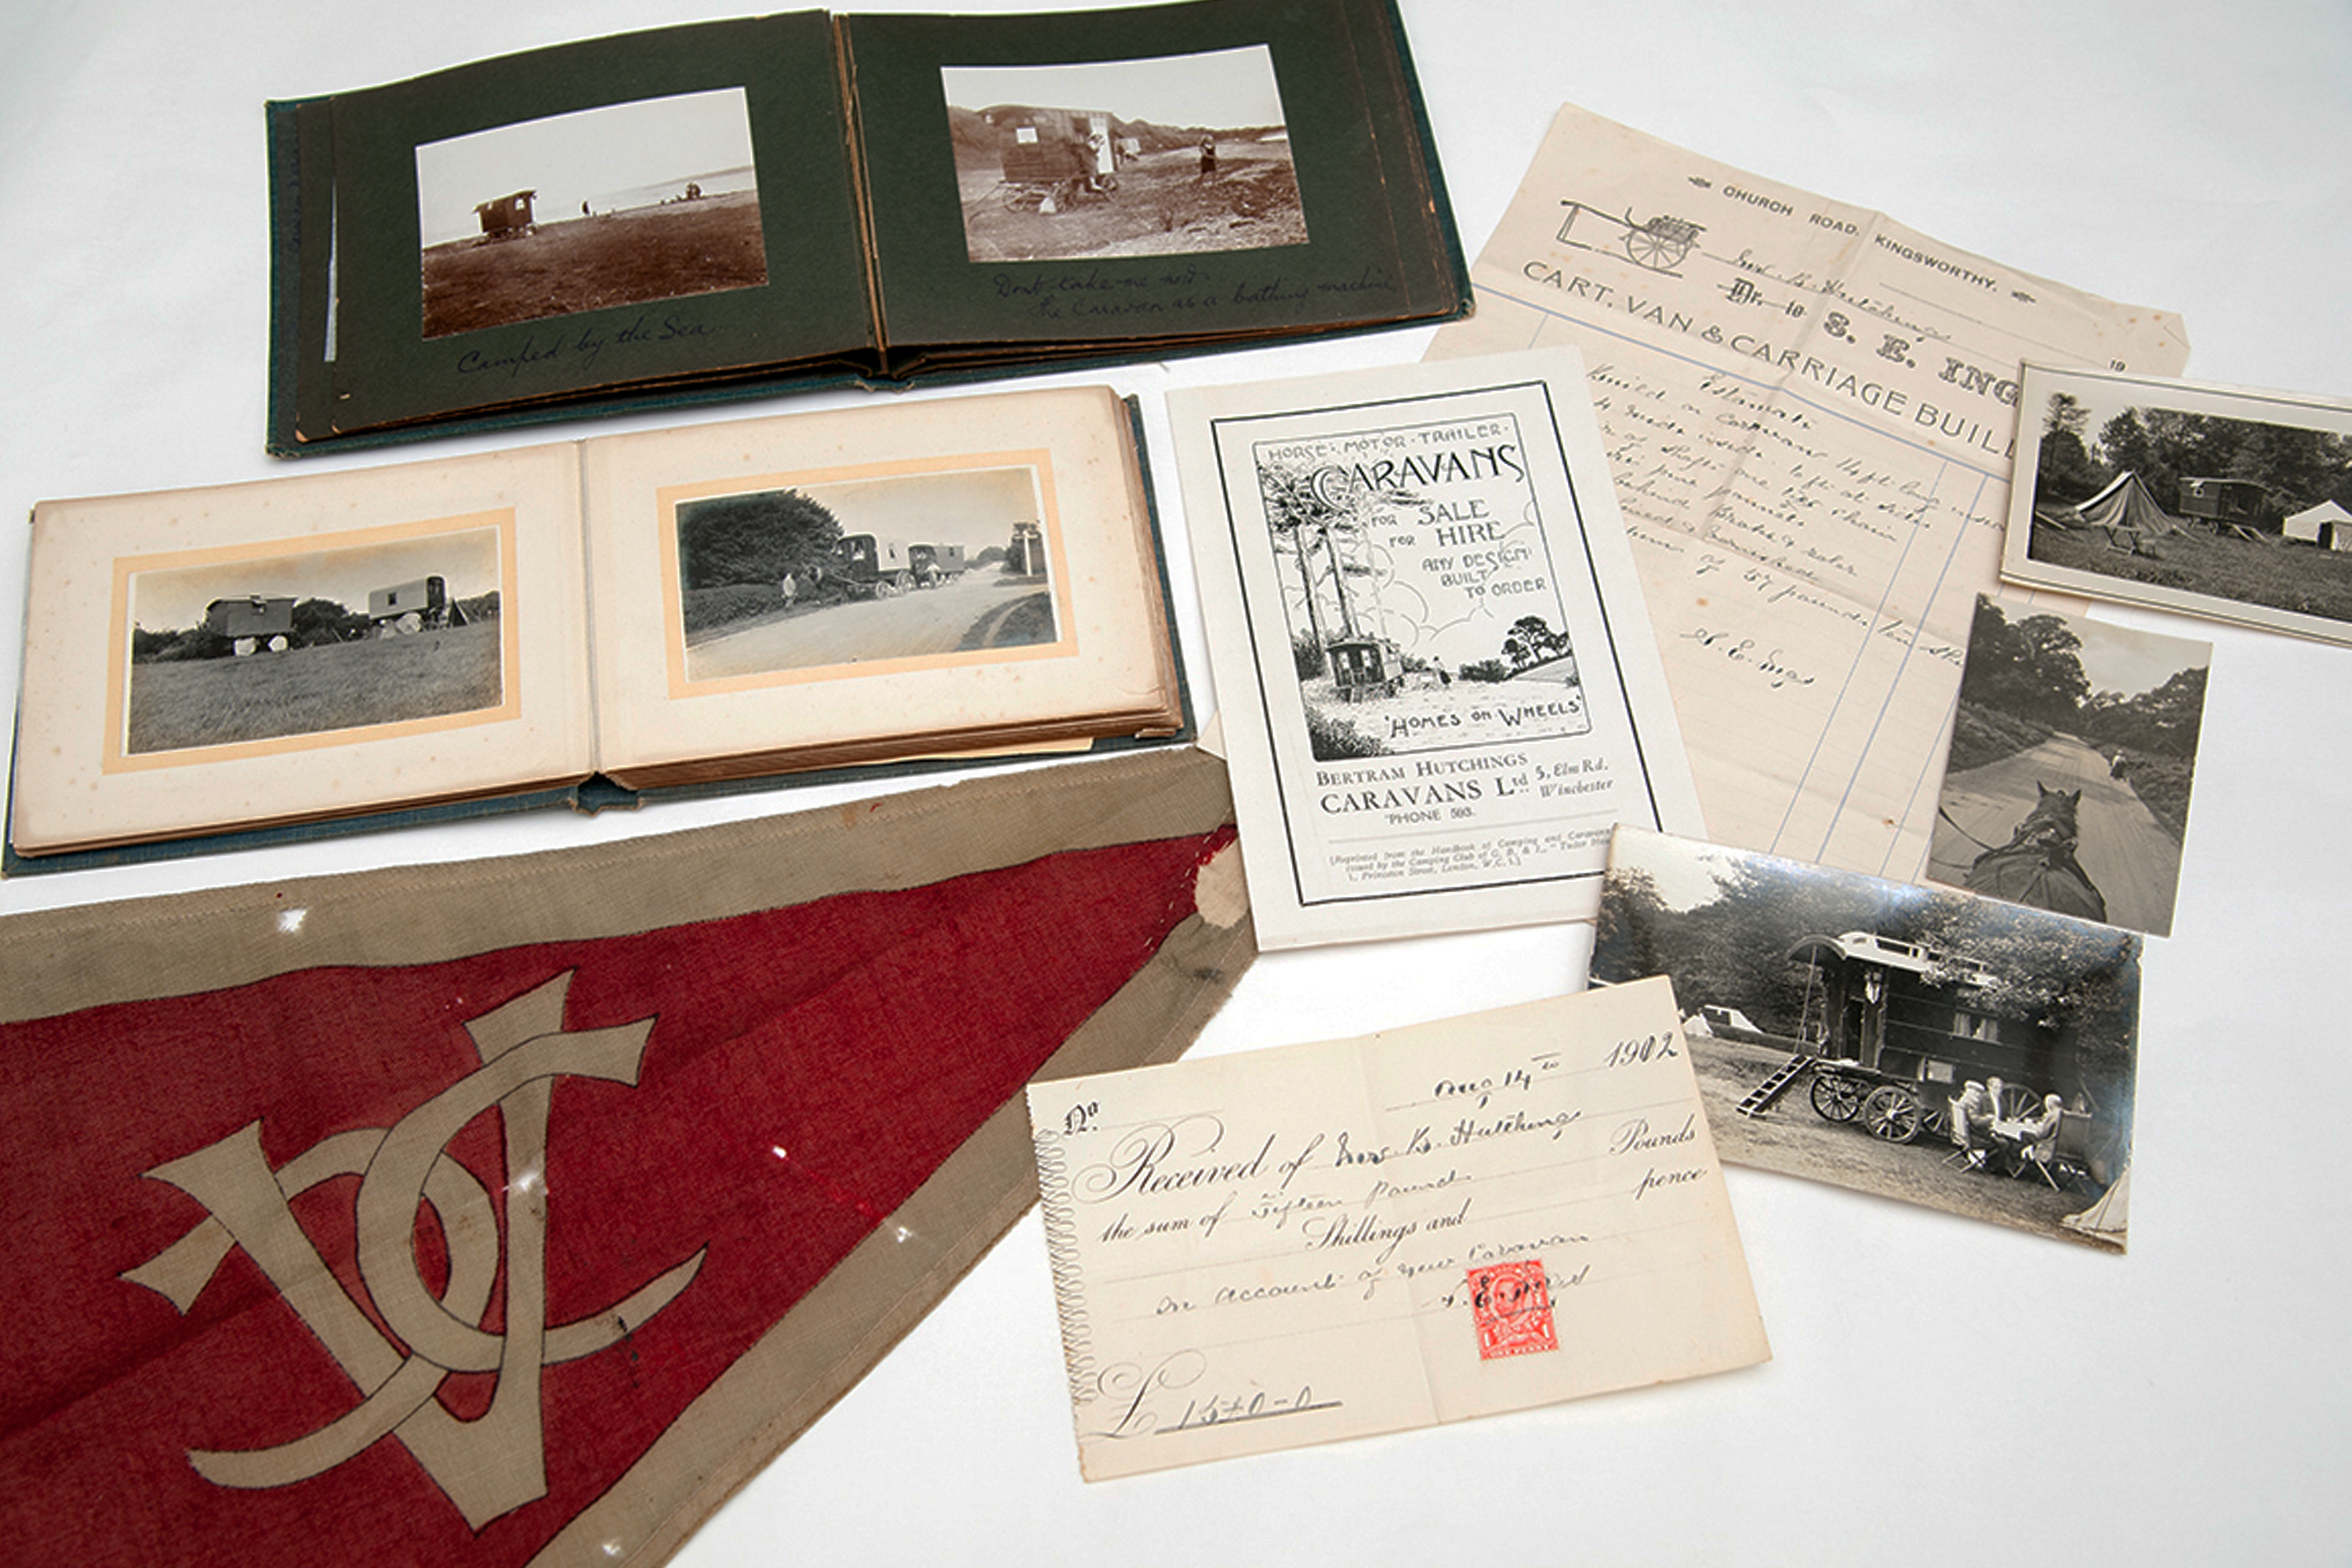 A collection of photo albums, a flag and documents